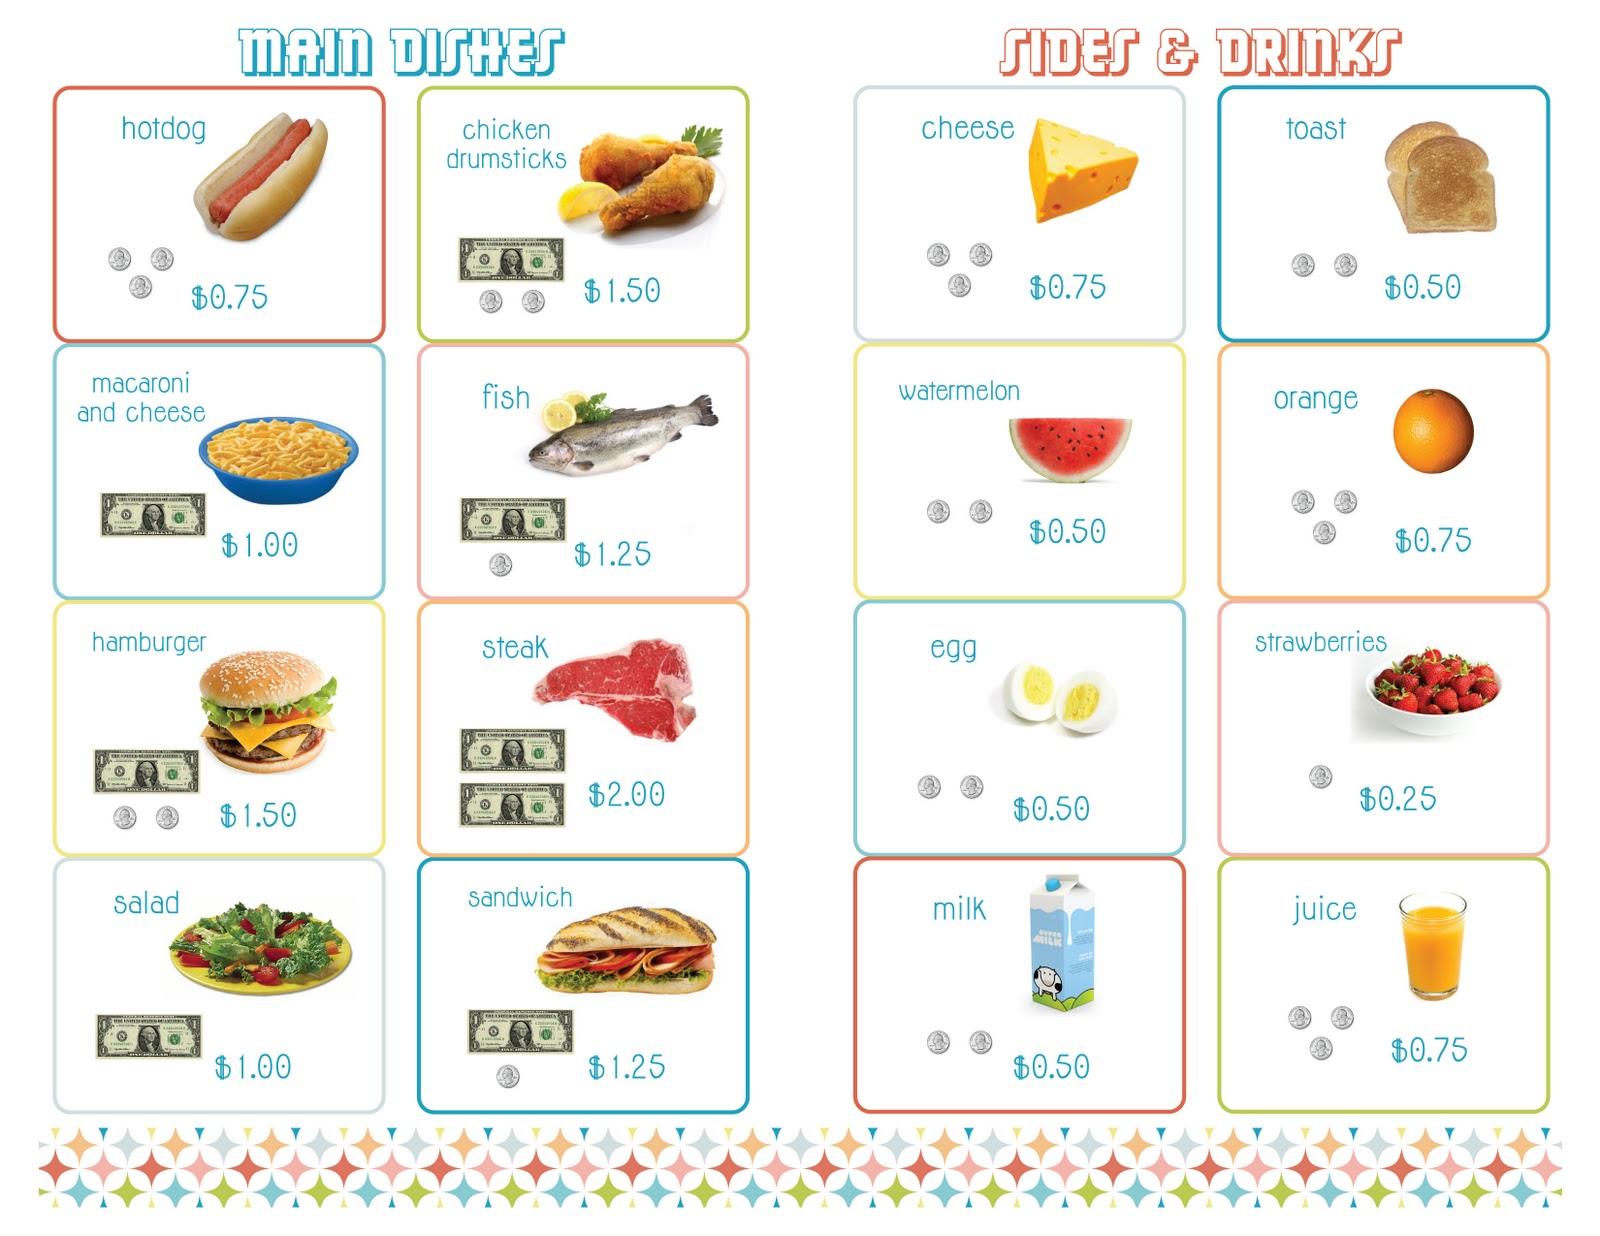 free printable menu templates for kids amy j delightful blog printable menus for playing restaurant